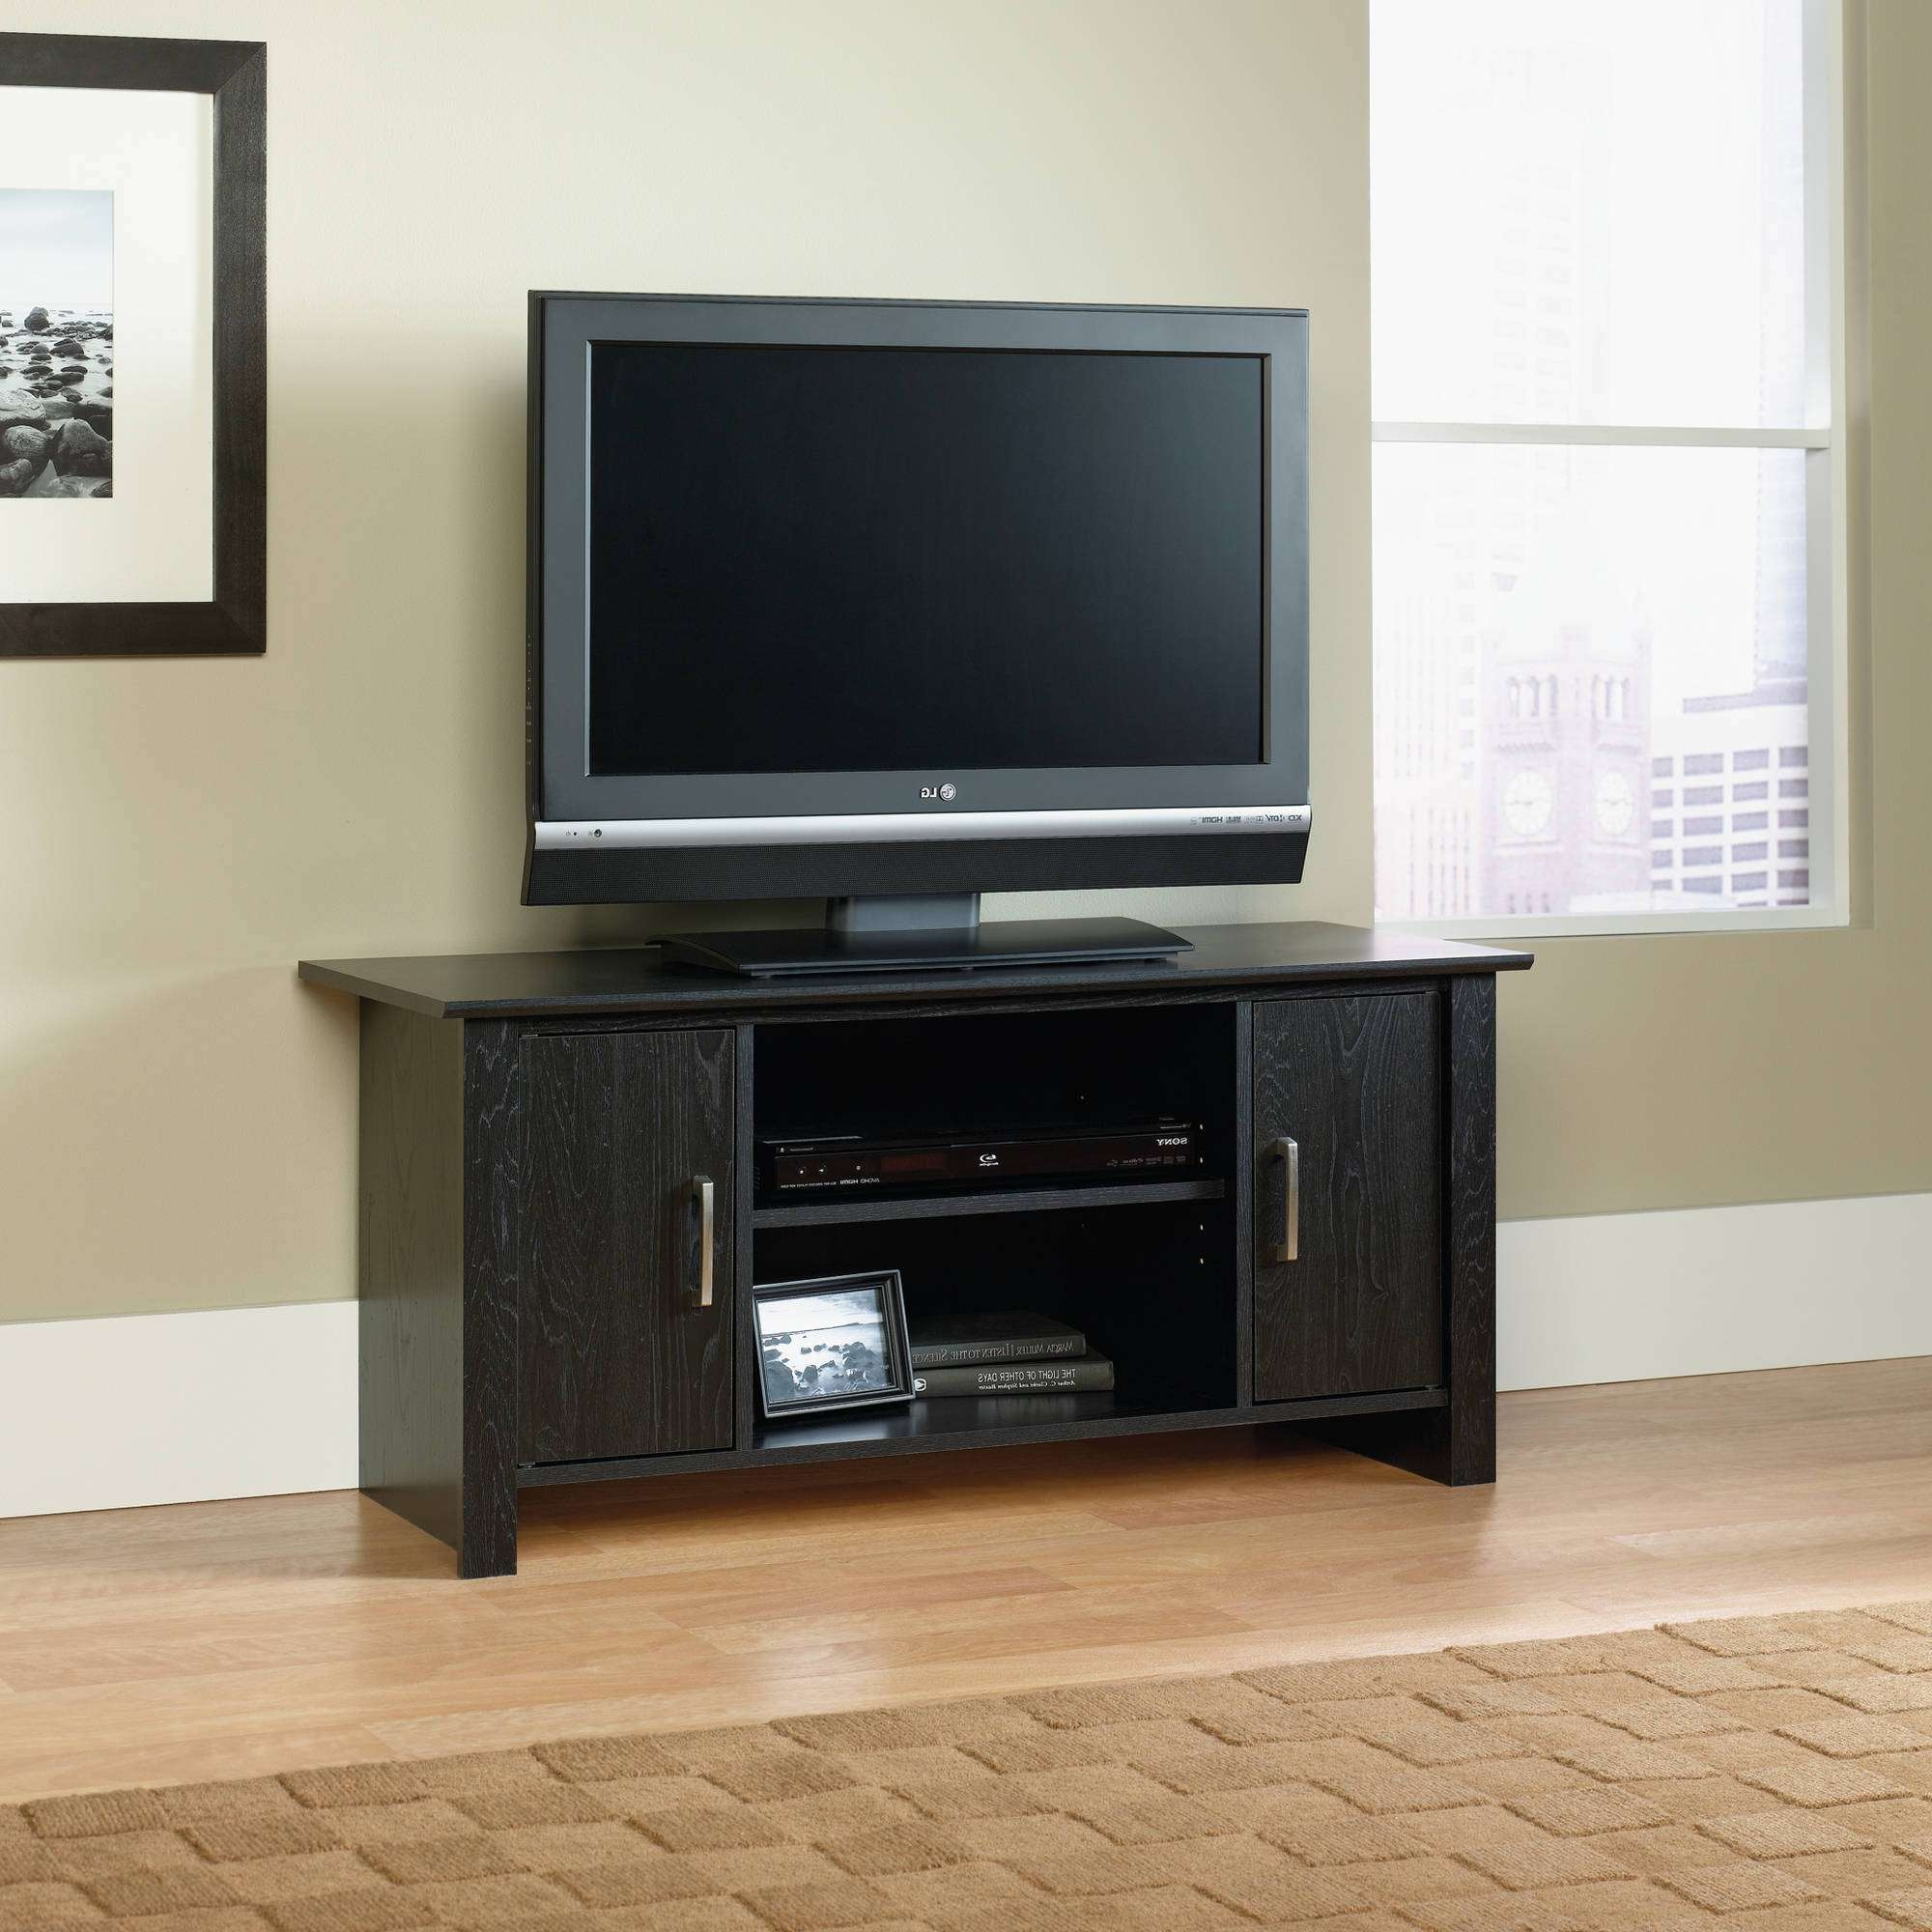 Oak Tv Stands For Flat Screen Inside Oak Tv Cabinets For Flat Screens (View 16 of 20)